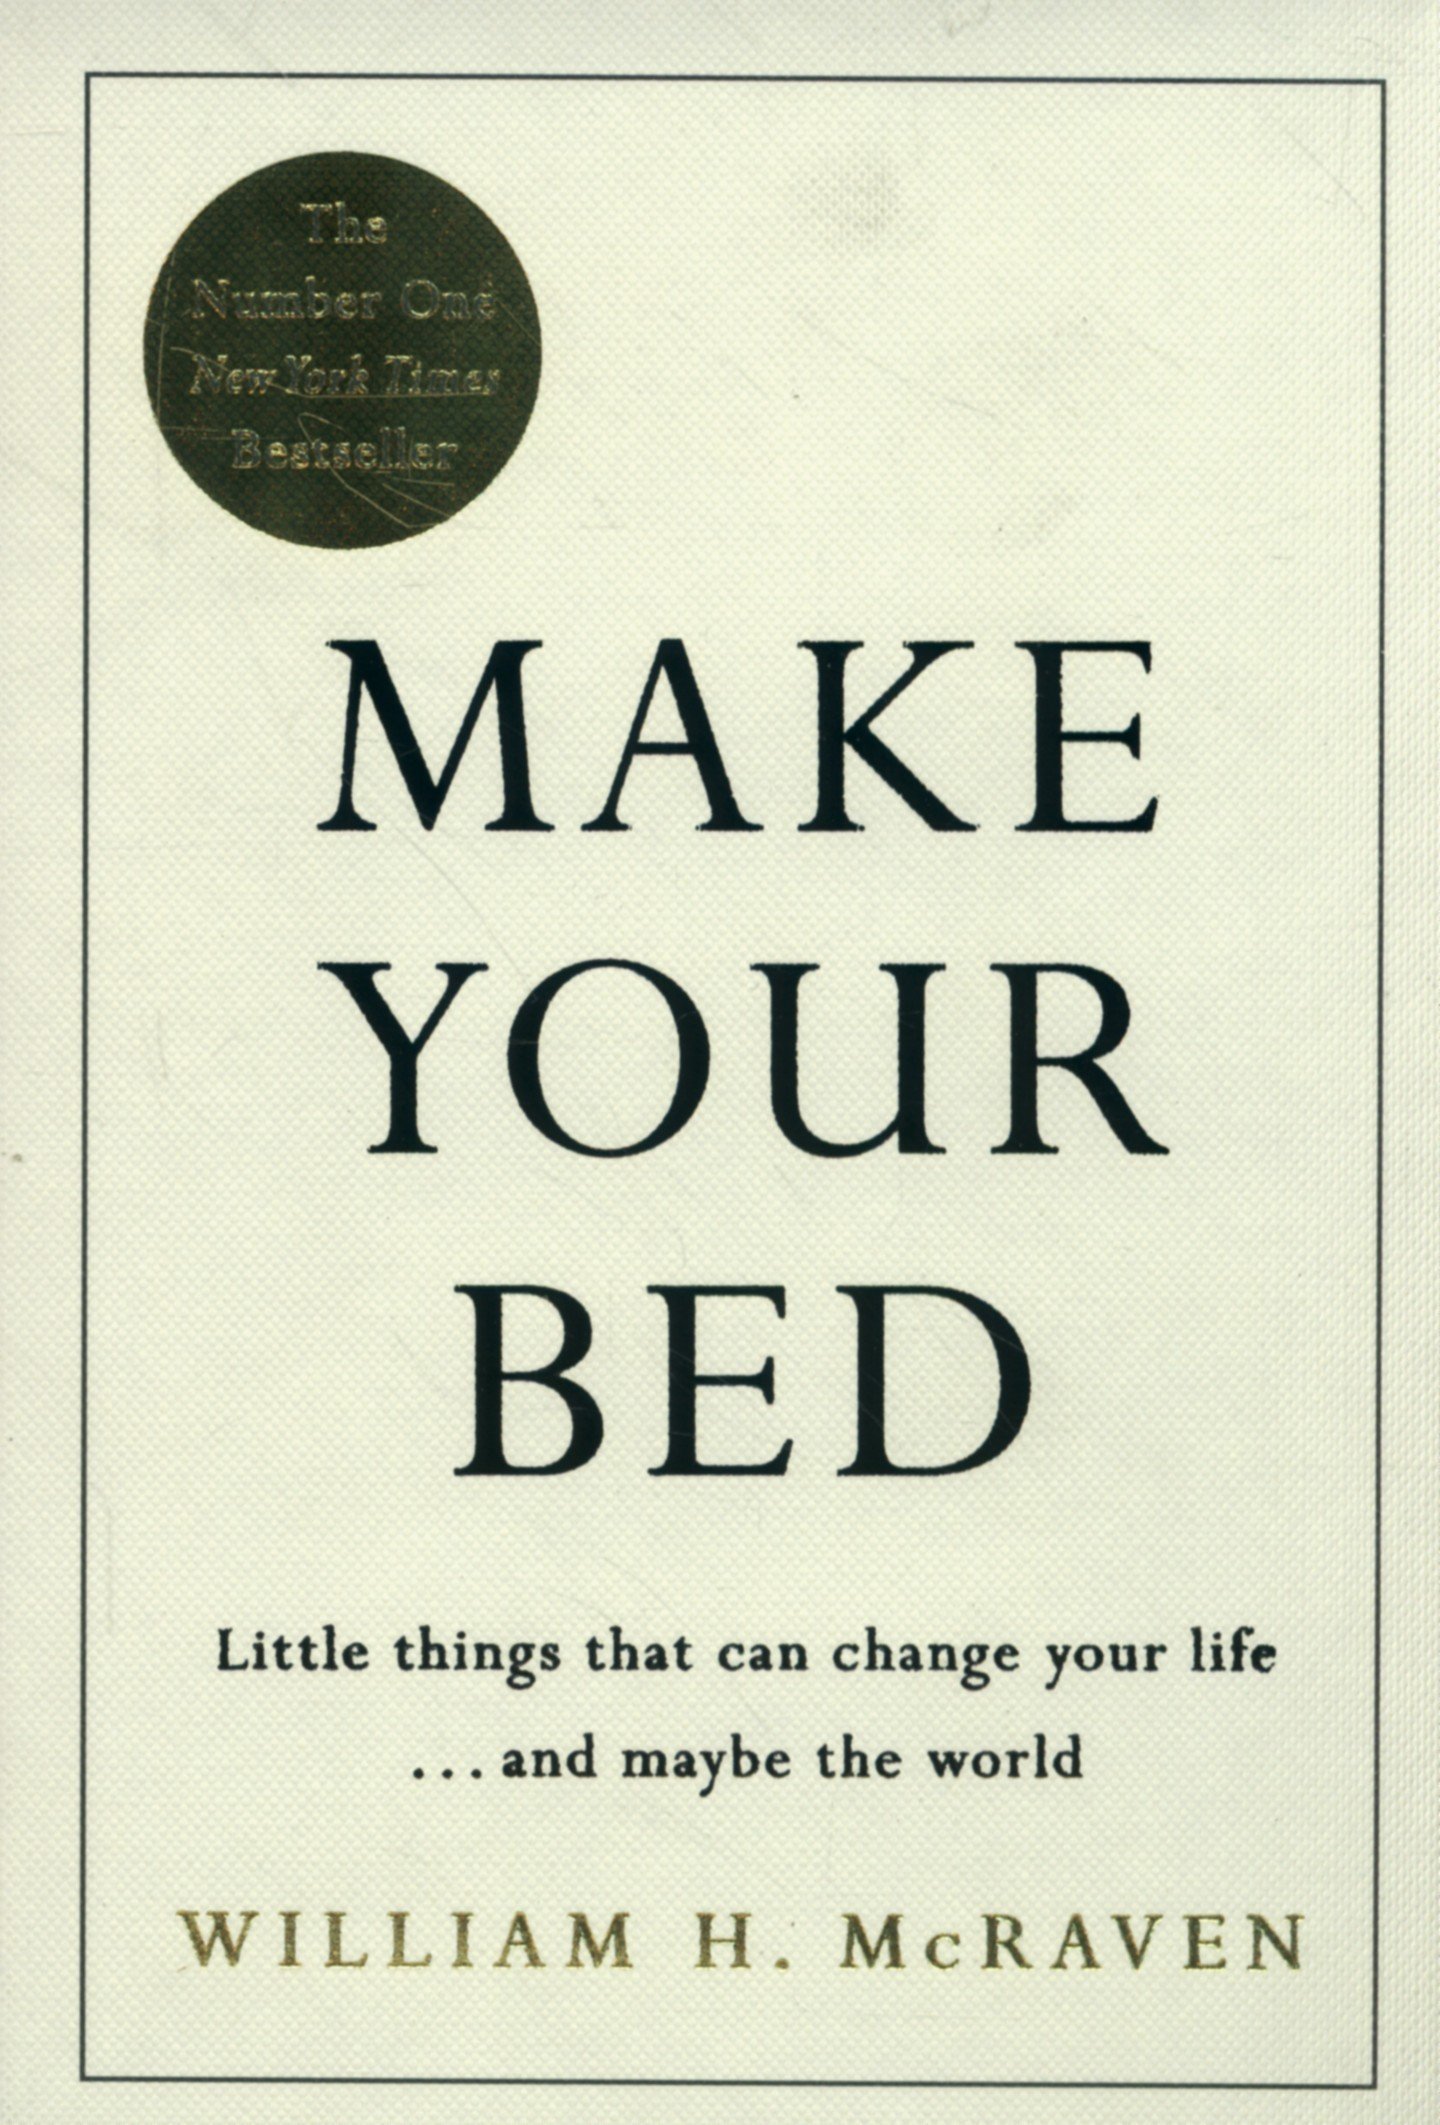 Make Your Bed Small Things That Can Change Life And Maybe The World Amazoncouk Admiral William H McRaven 9780718188863 Books